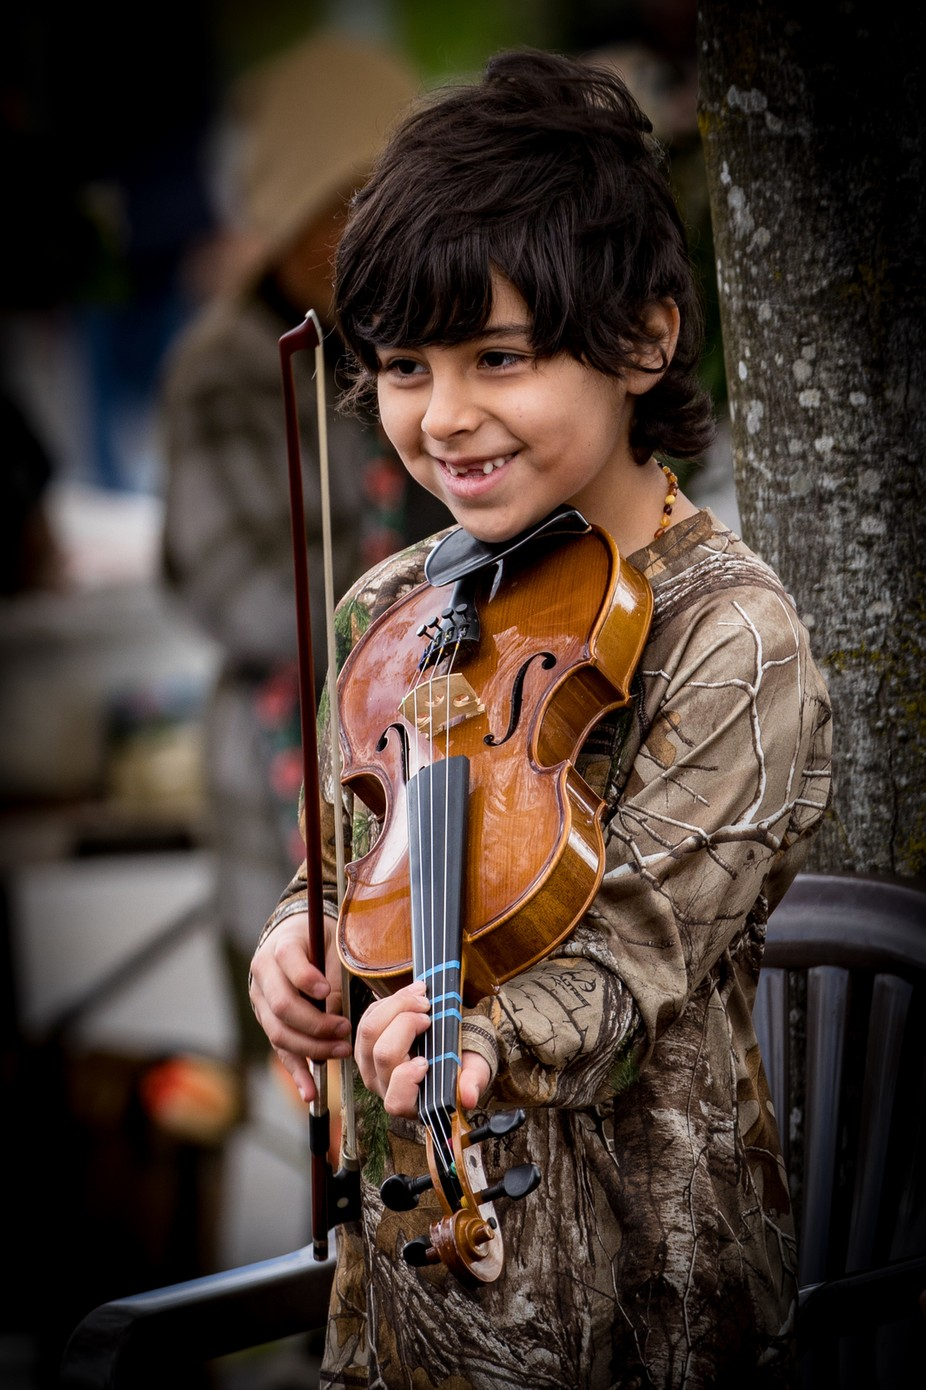 This young man was playing the violin at the Saturday Market in Salem, Oregon